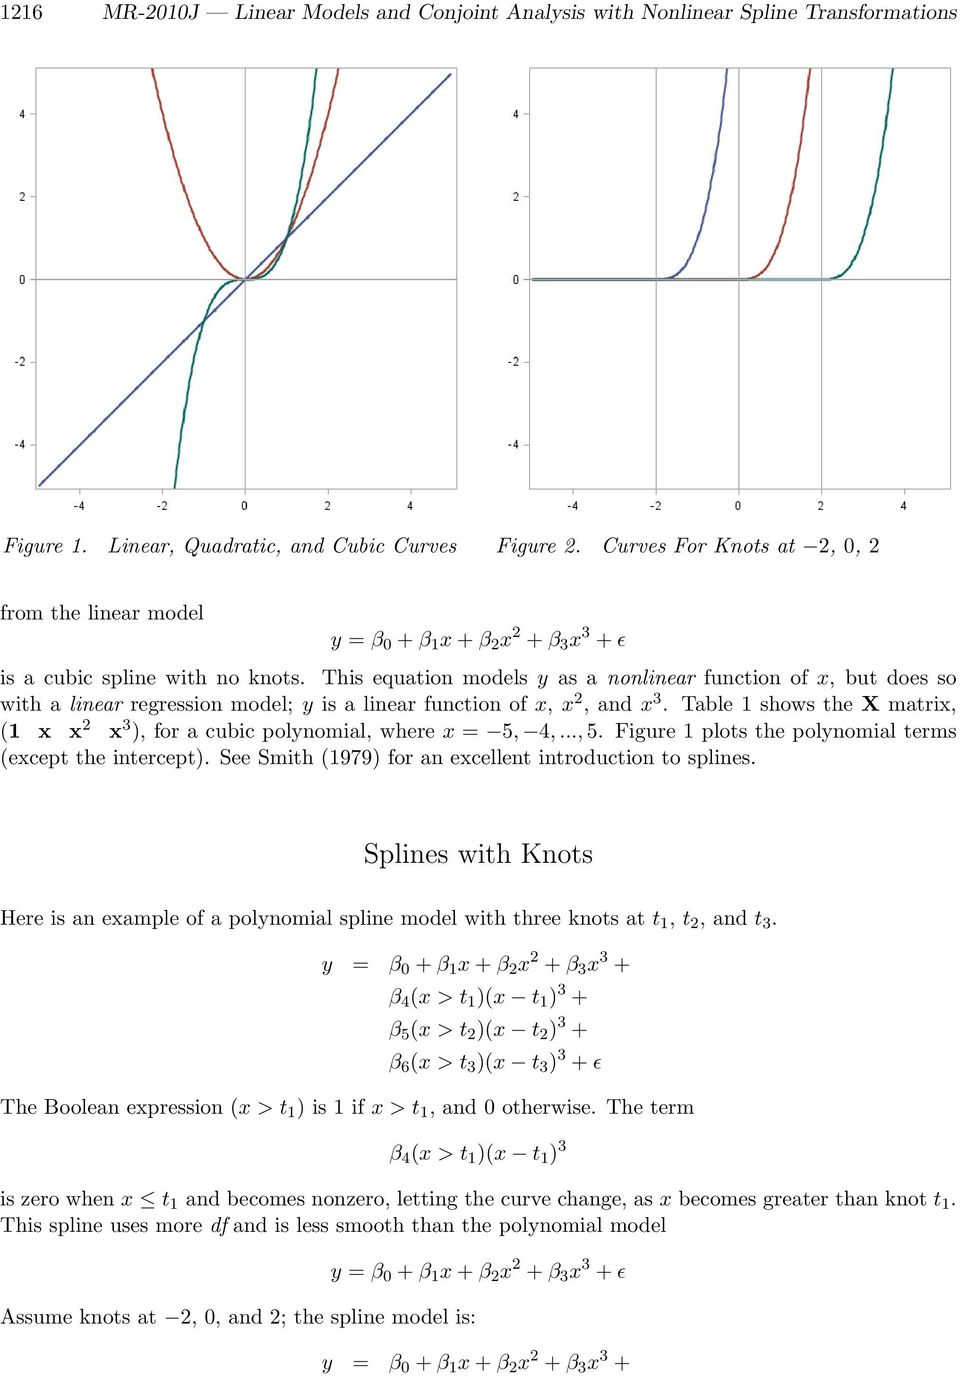 Linear Models and Conjoint Analysis with Nonlinear Spline